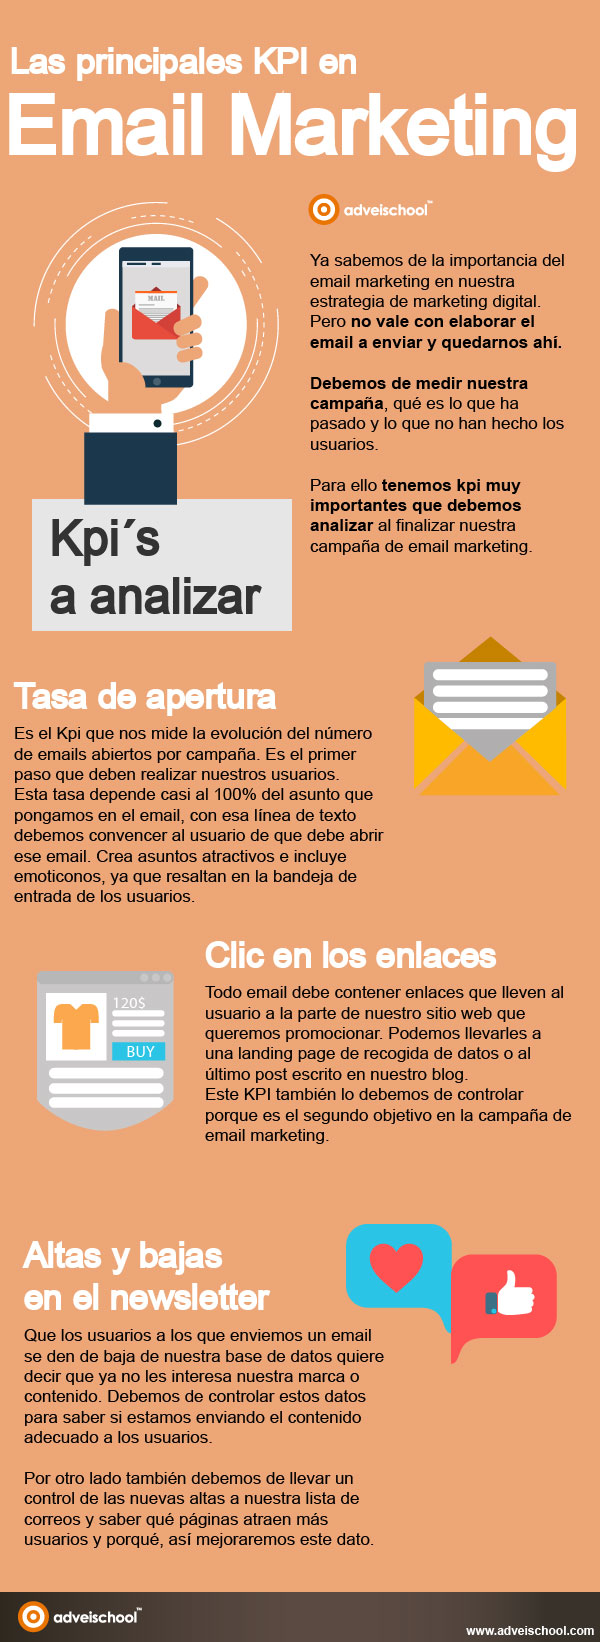 Principales KPI del email marketing #infografia #infographic #marketing